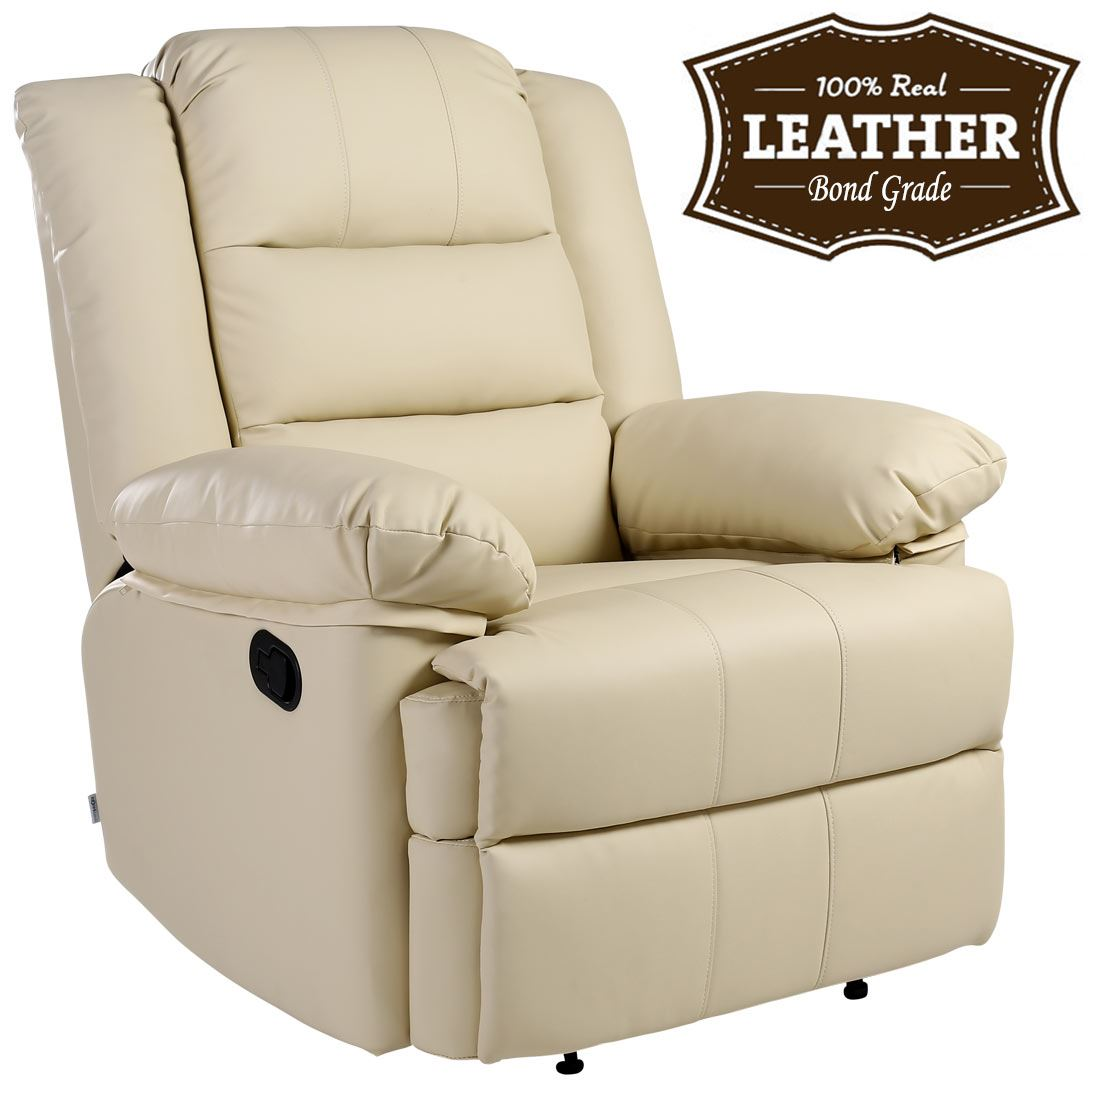 leather recliner armchair sofa home lounge chair reclining gaming